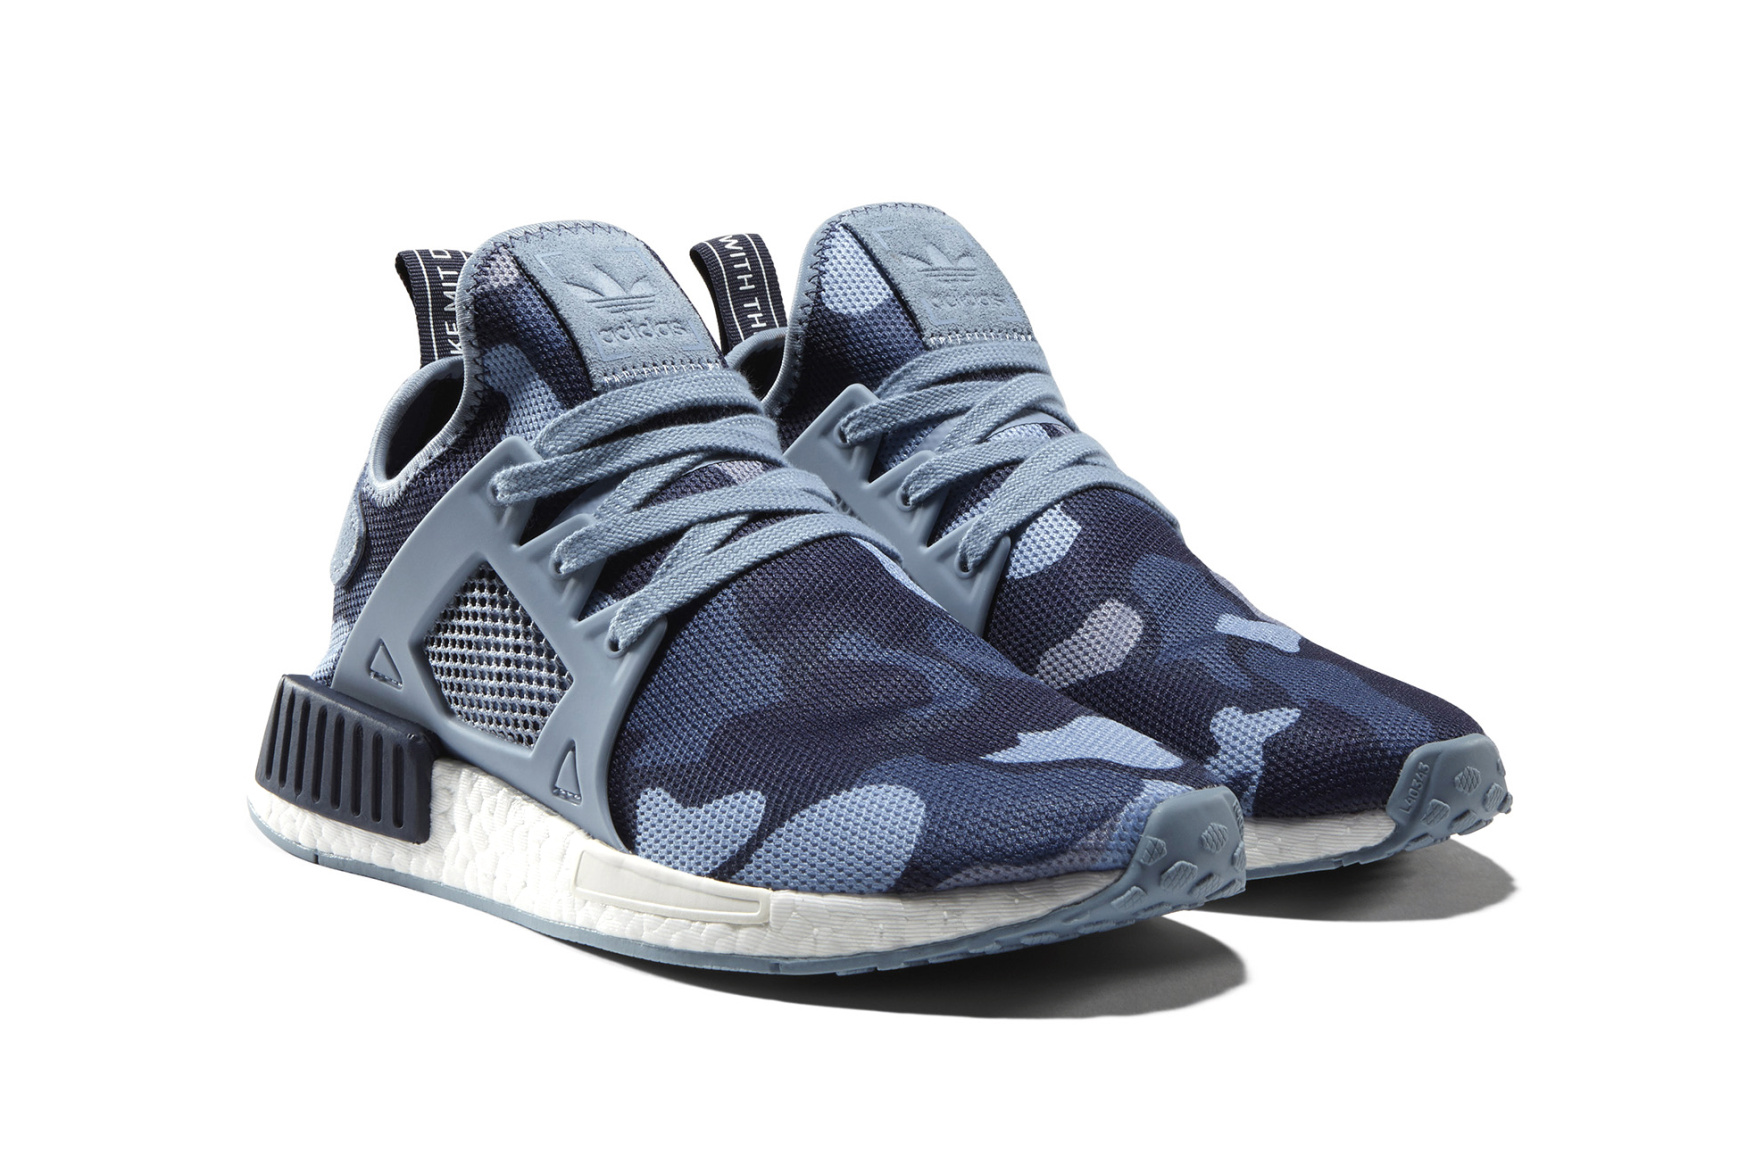 adidas nmd xr1 camo pack sneakers addict. Black Bedroom Furniture Sets. Home Design Ideas